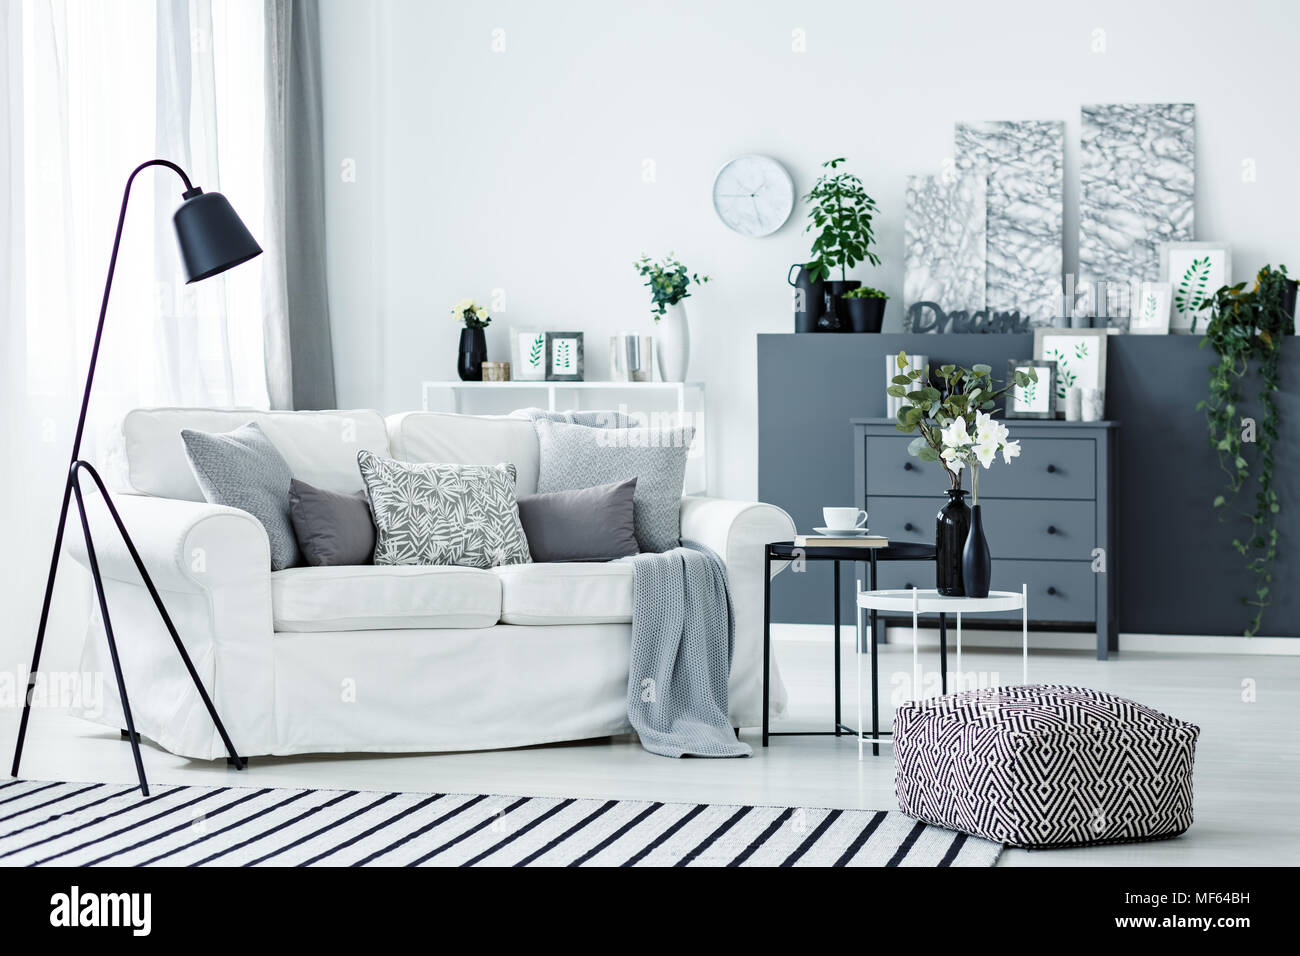 Nordic bright living room interior with white couch, fresh plants ...